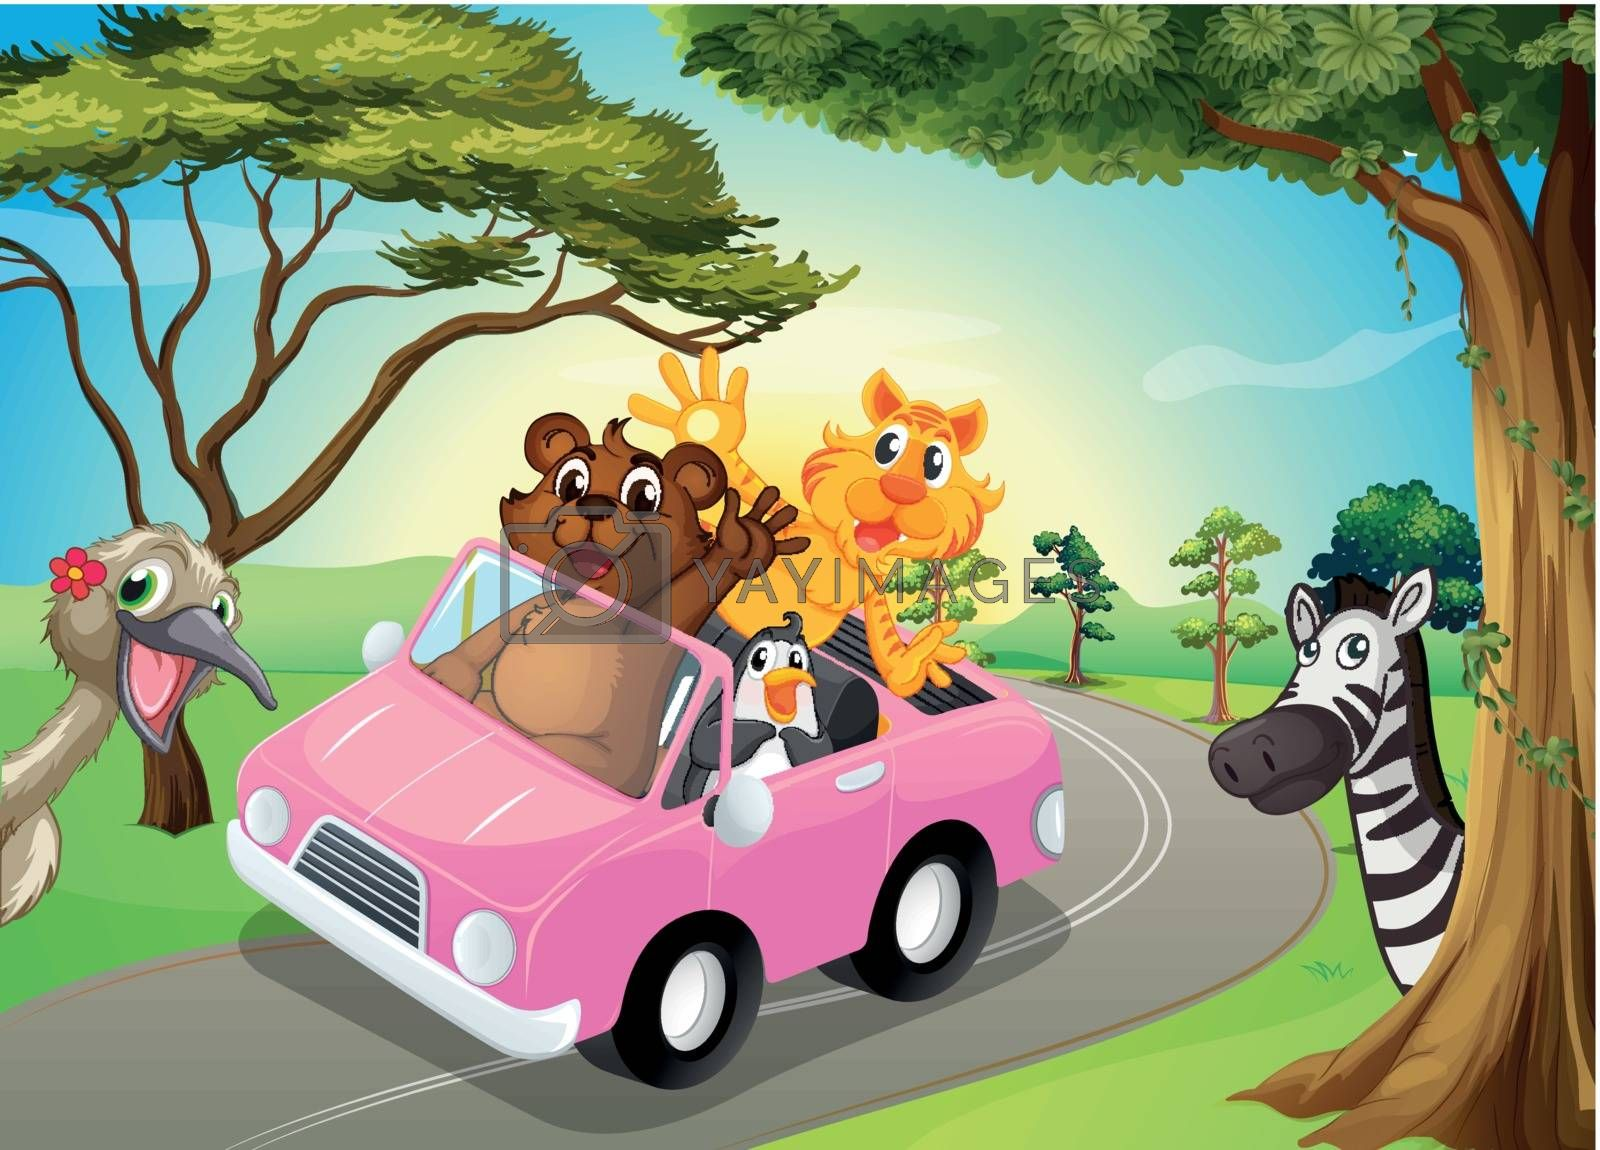 Illustration of a pink car with animals